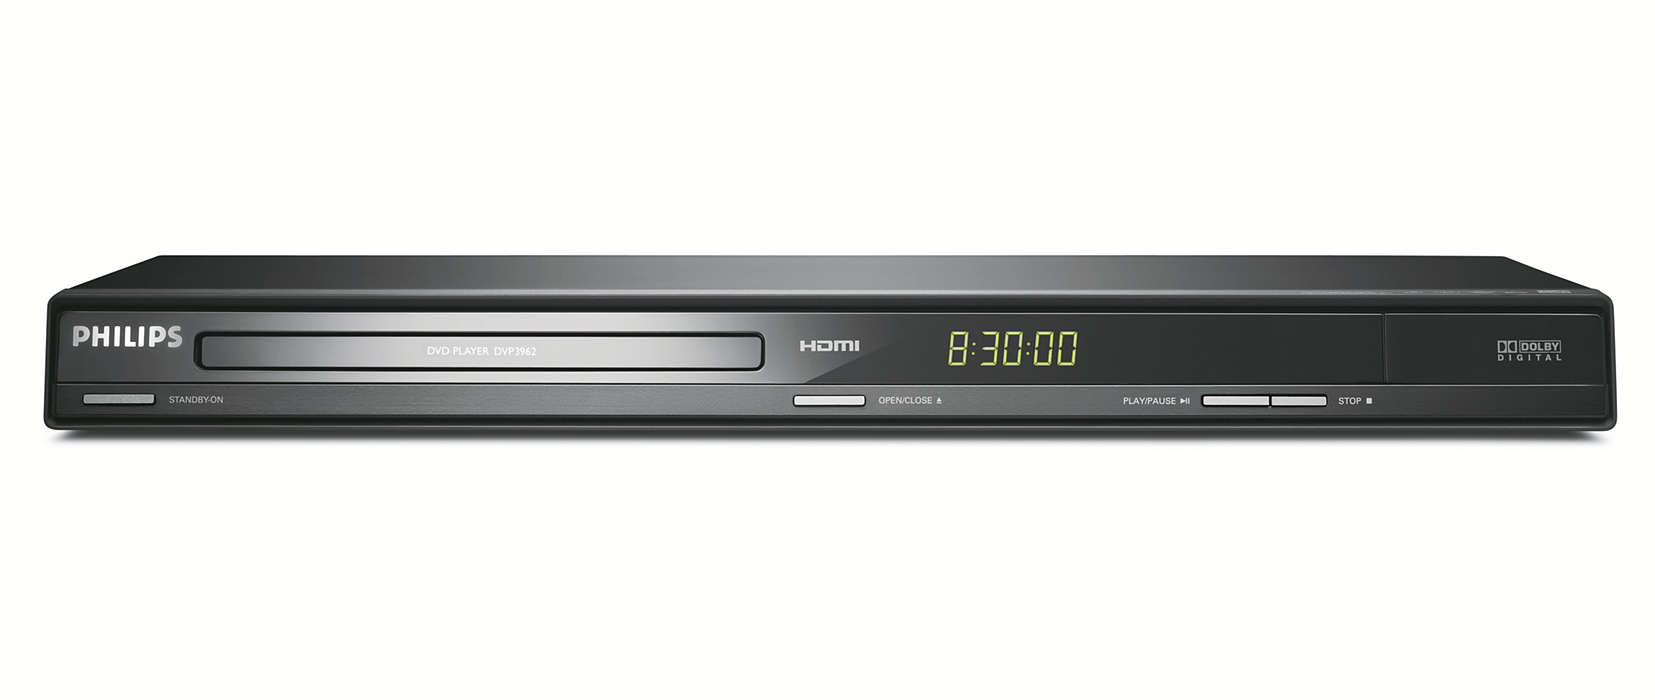 DVD playback with 1080i HDMI upconversion